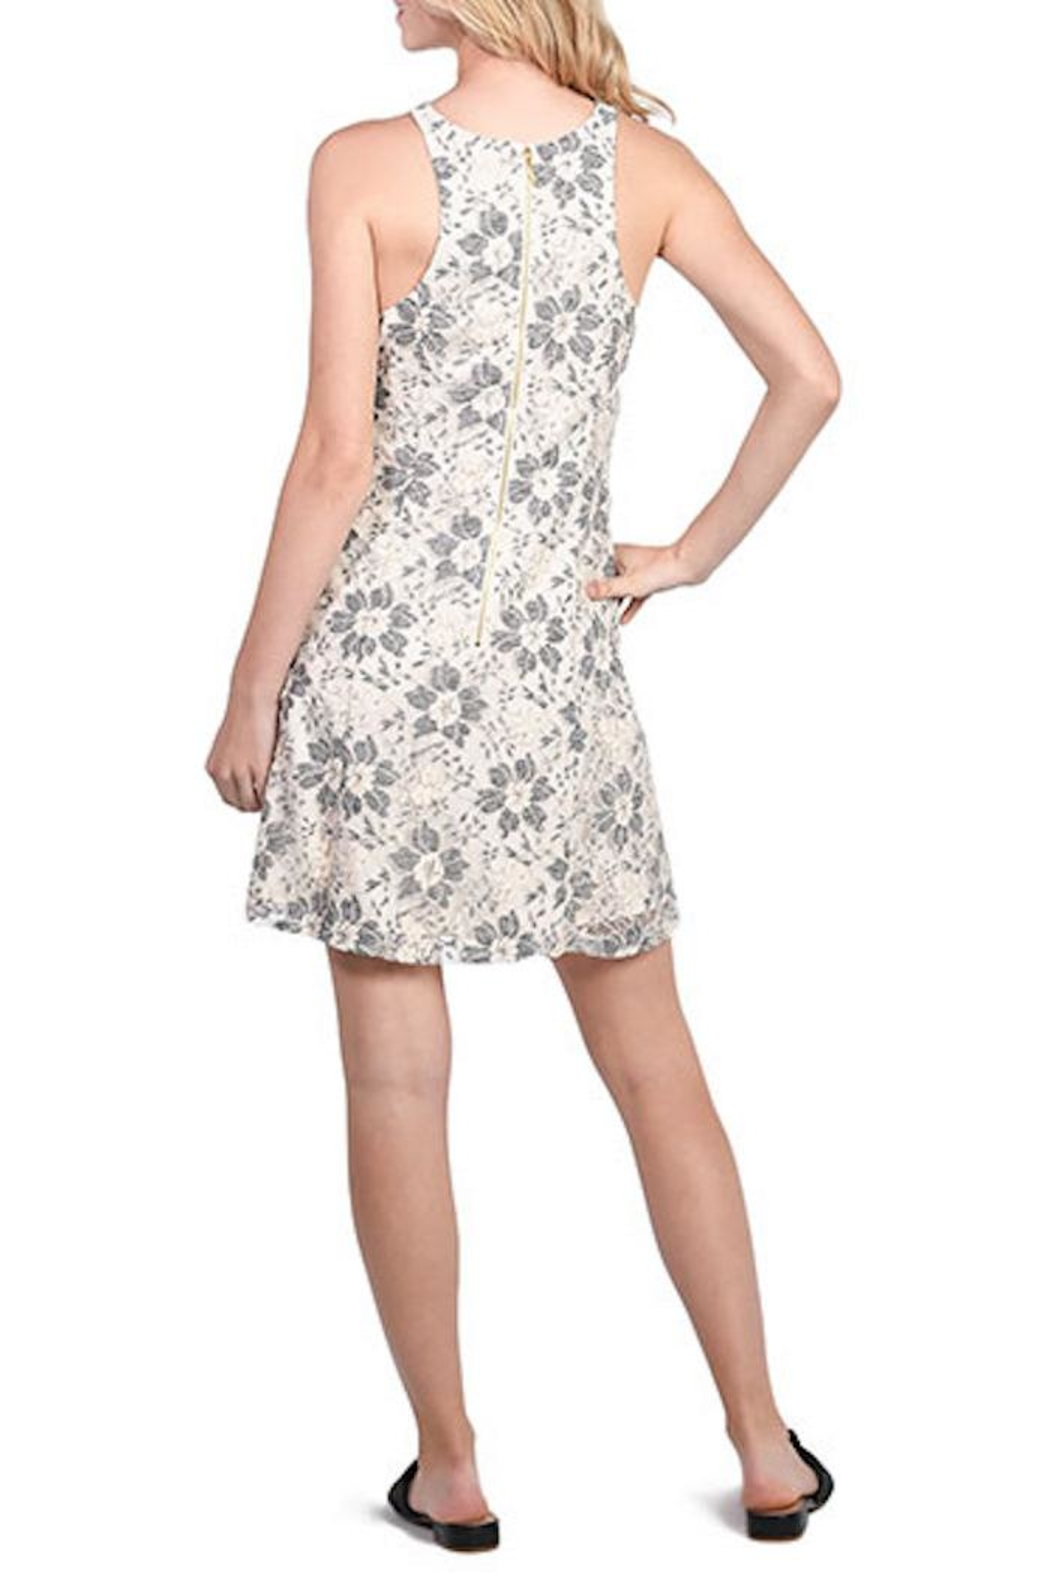 Kensie Blossom Lace Dress - Side Cropped Image